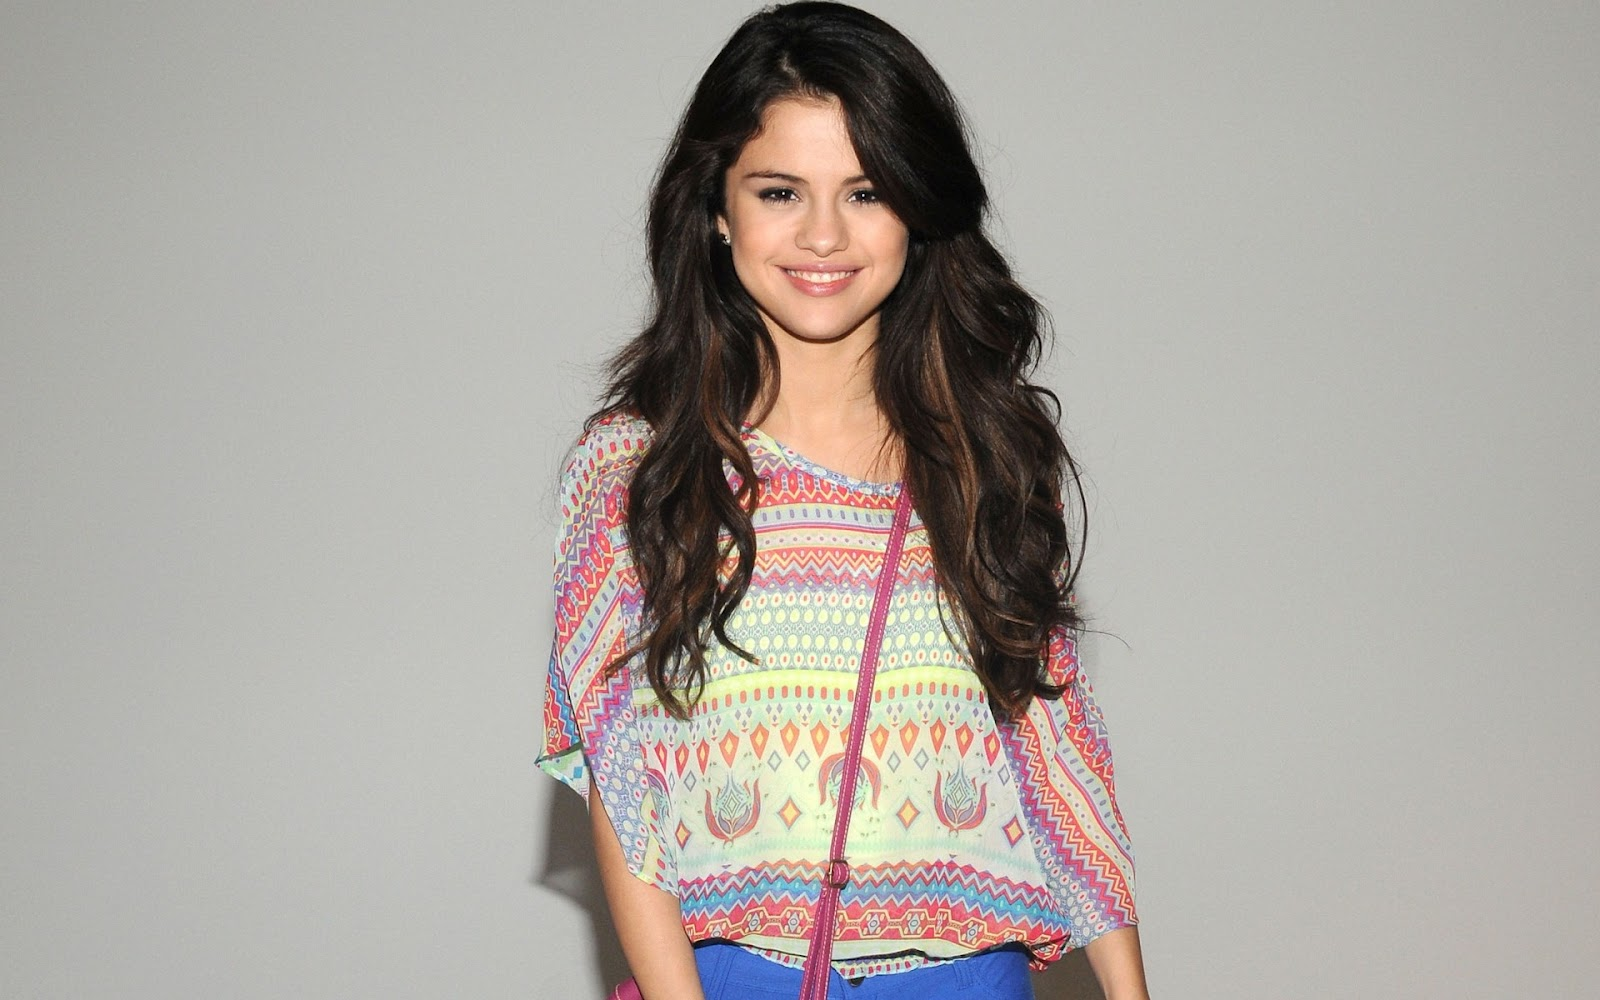 CELEBRITIES VIEW BUZZ: Selena Gomez at Hotel Transyvania ...